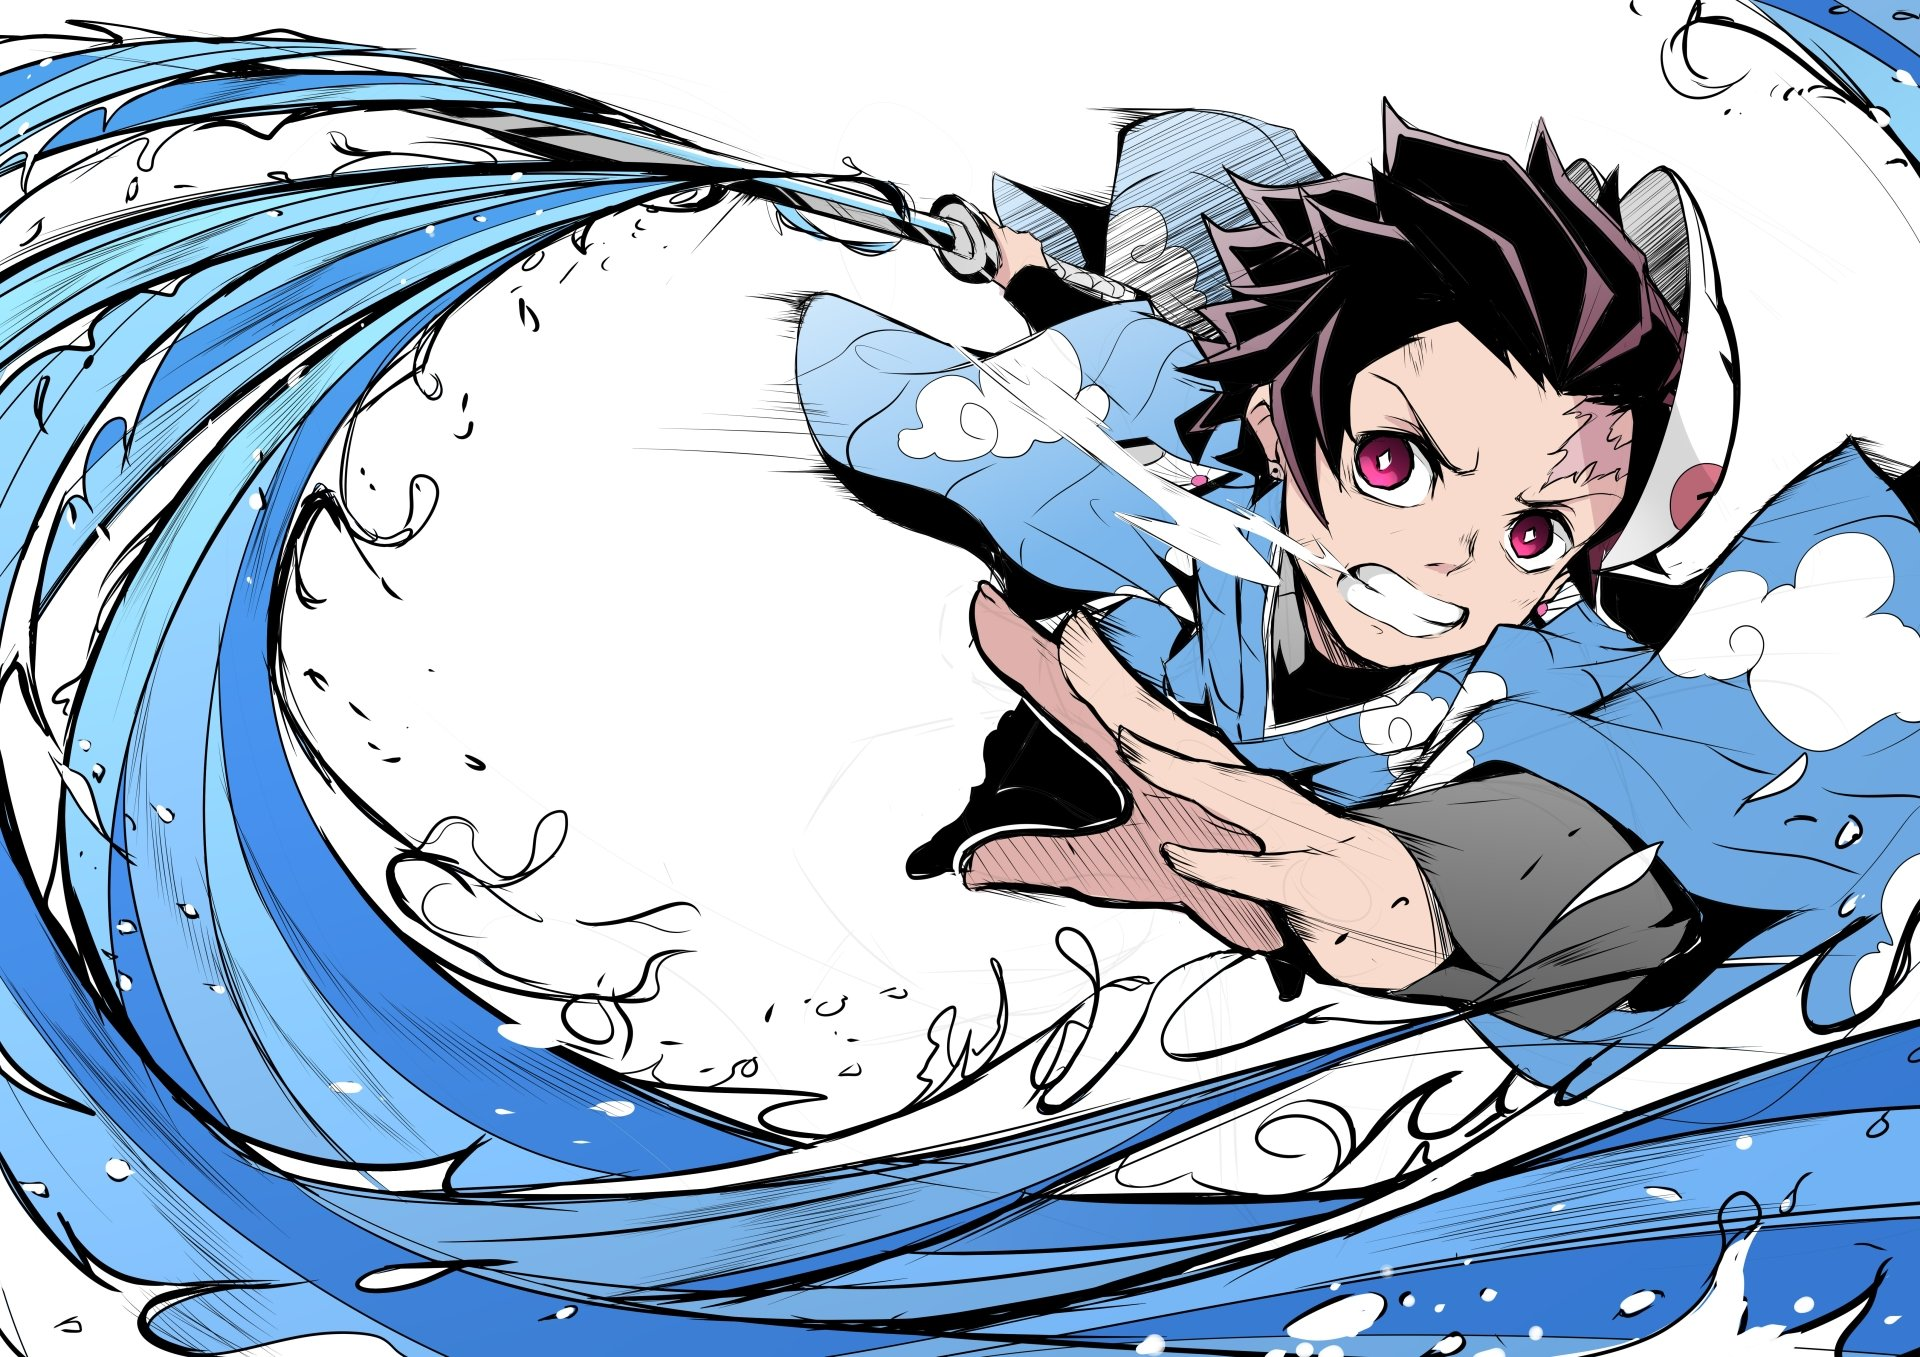 113 4k Ultra Hd Demon Slayer Kimetsu No Yaiba Wallpapers Background Images Wallpaper Abyss